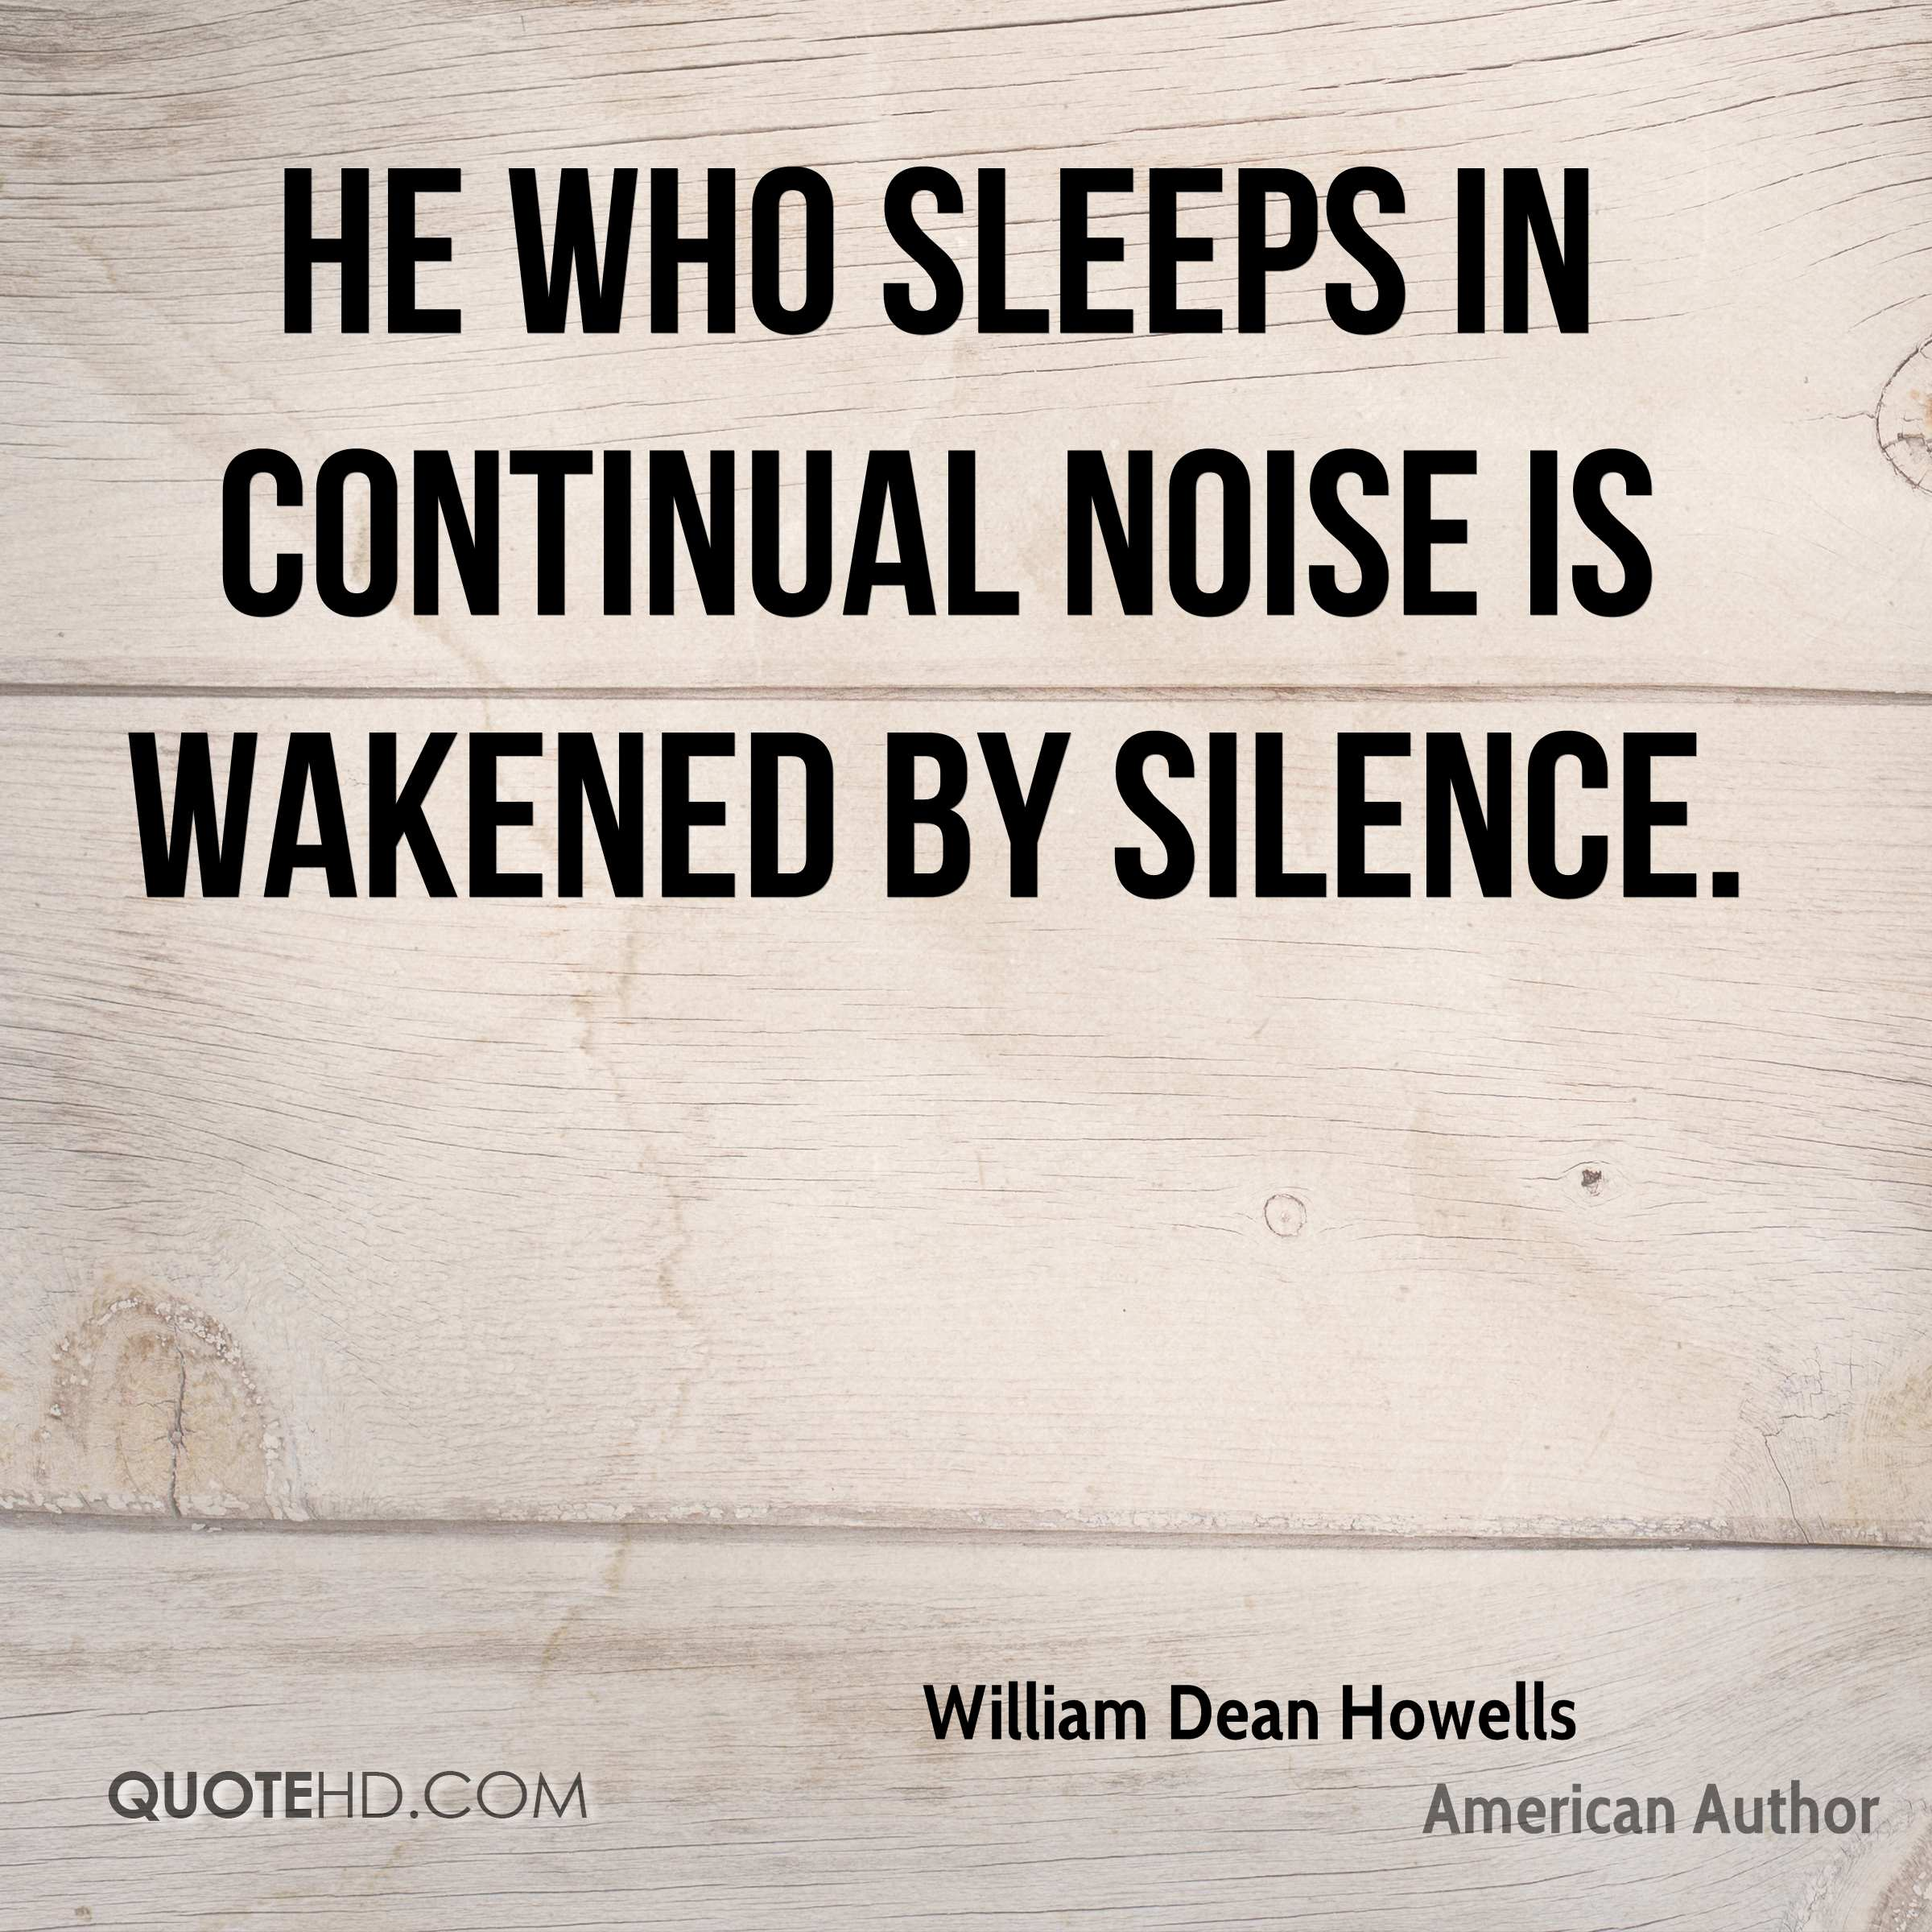 He who sleeps in continual noise is wakened by silence.